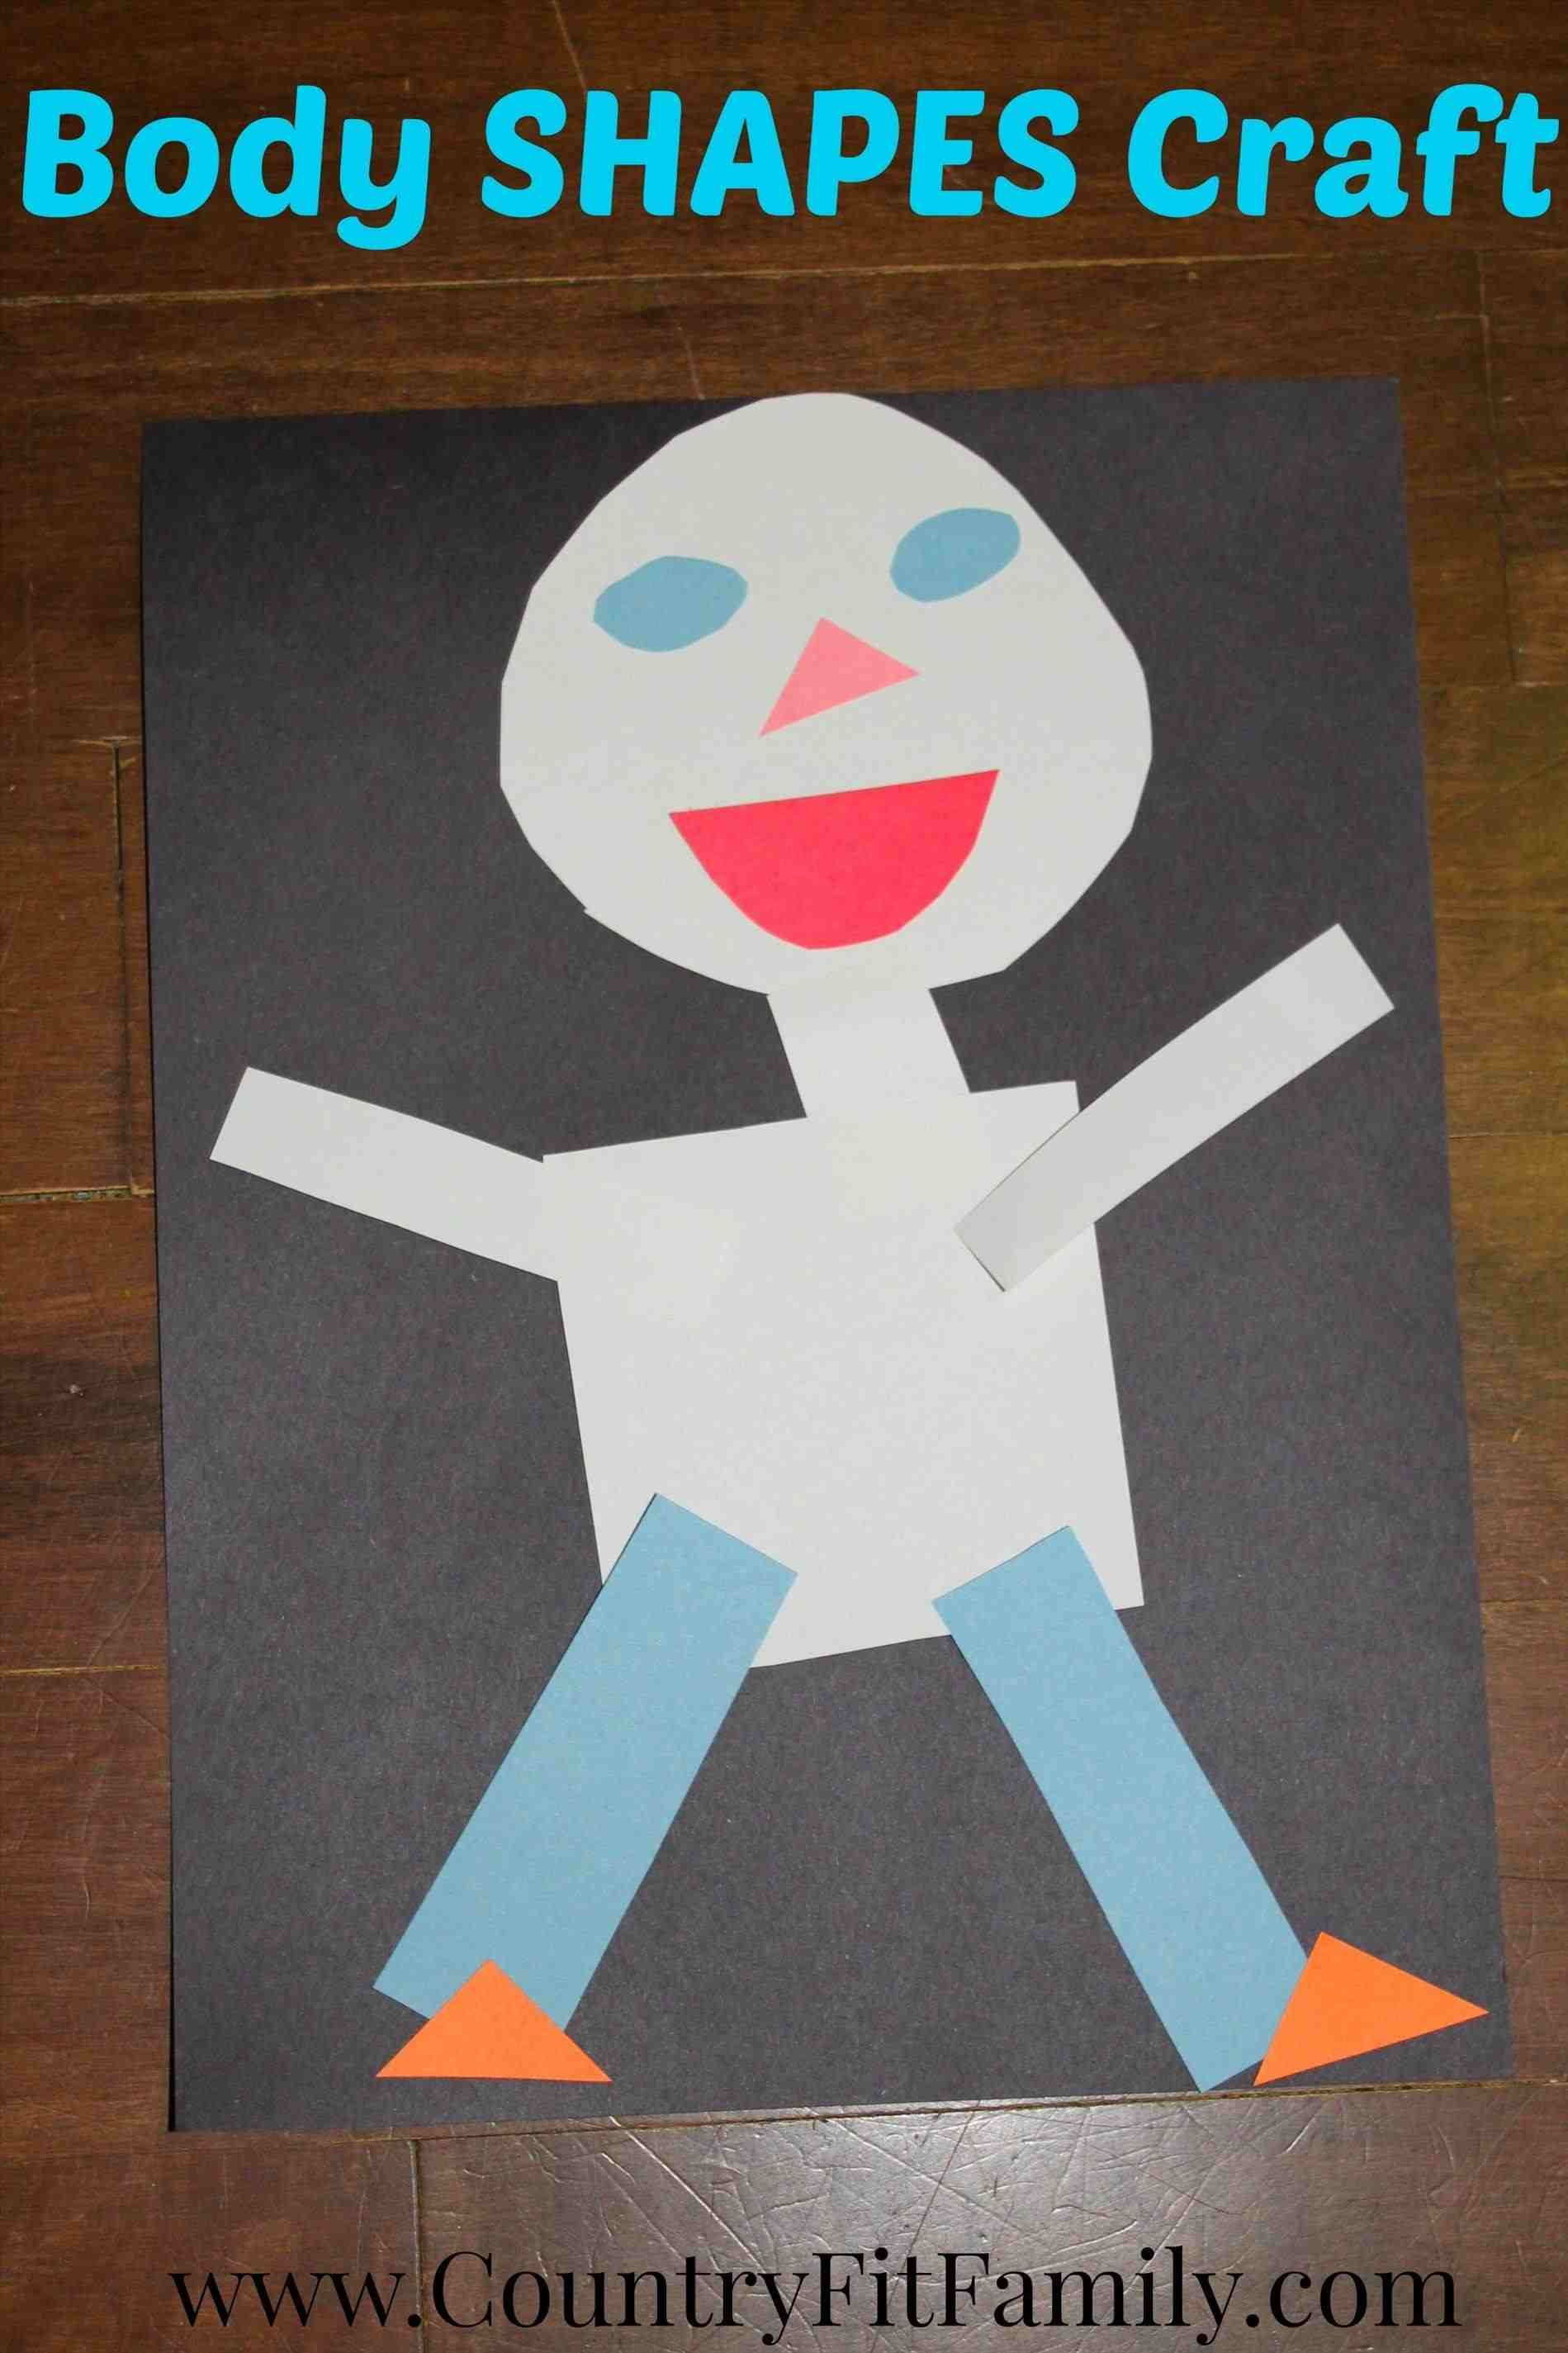 Body Body Parts Crafts Shapes Craft For Preschoolers